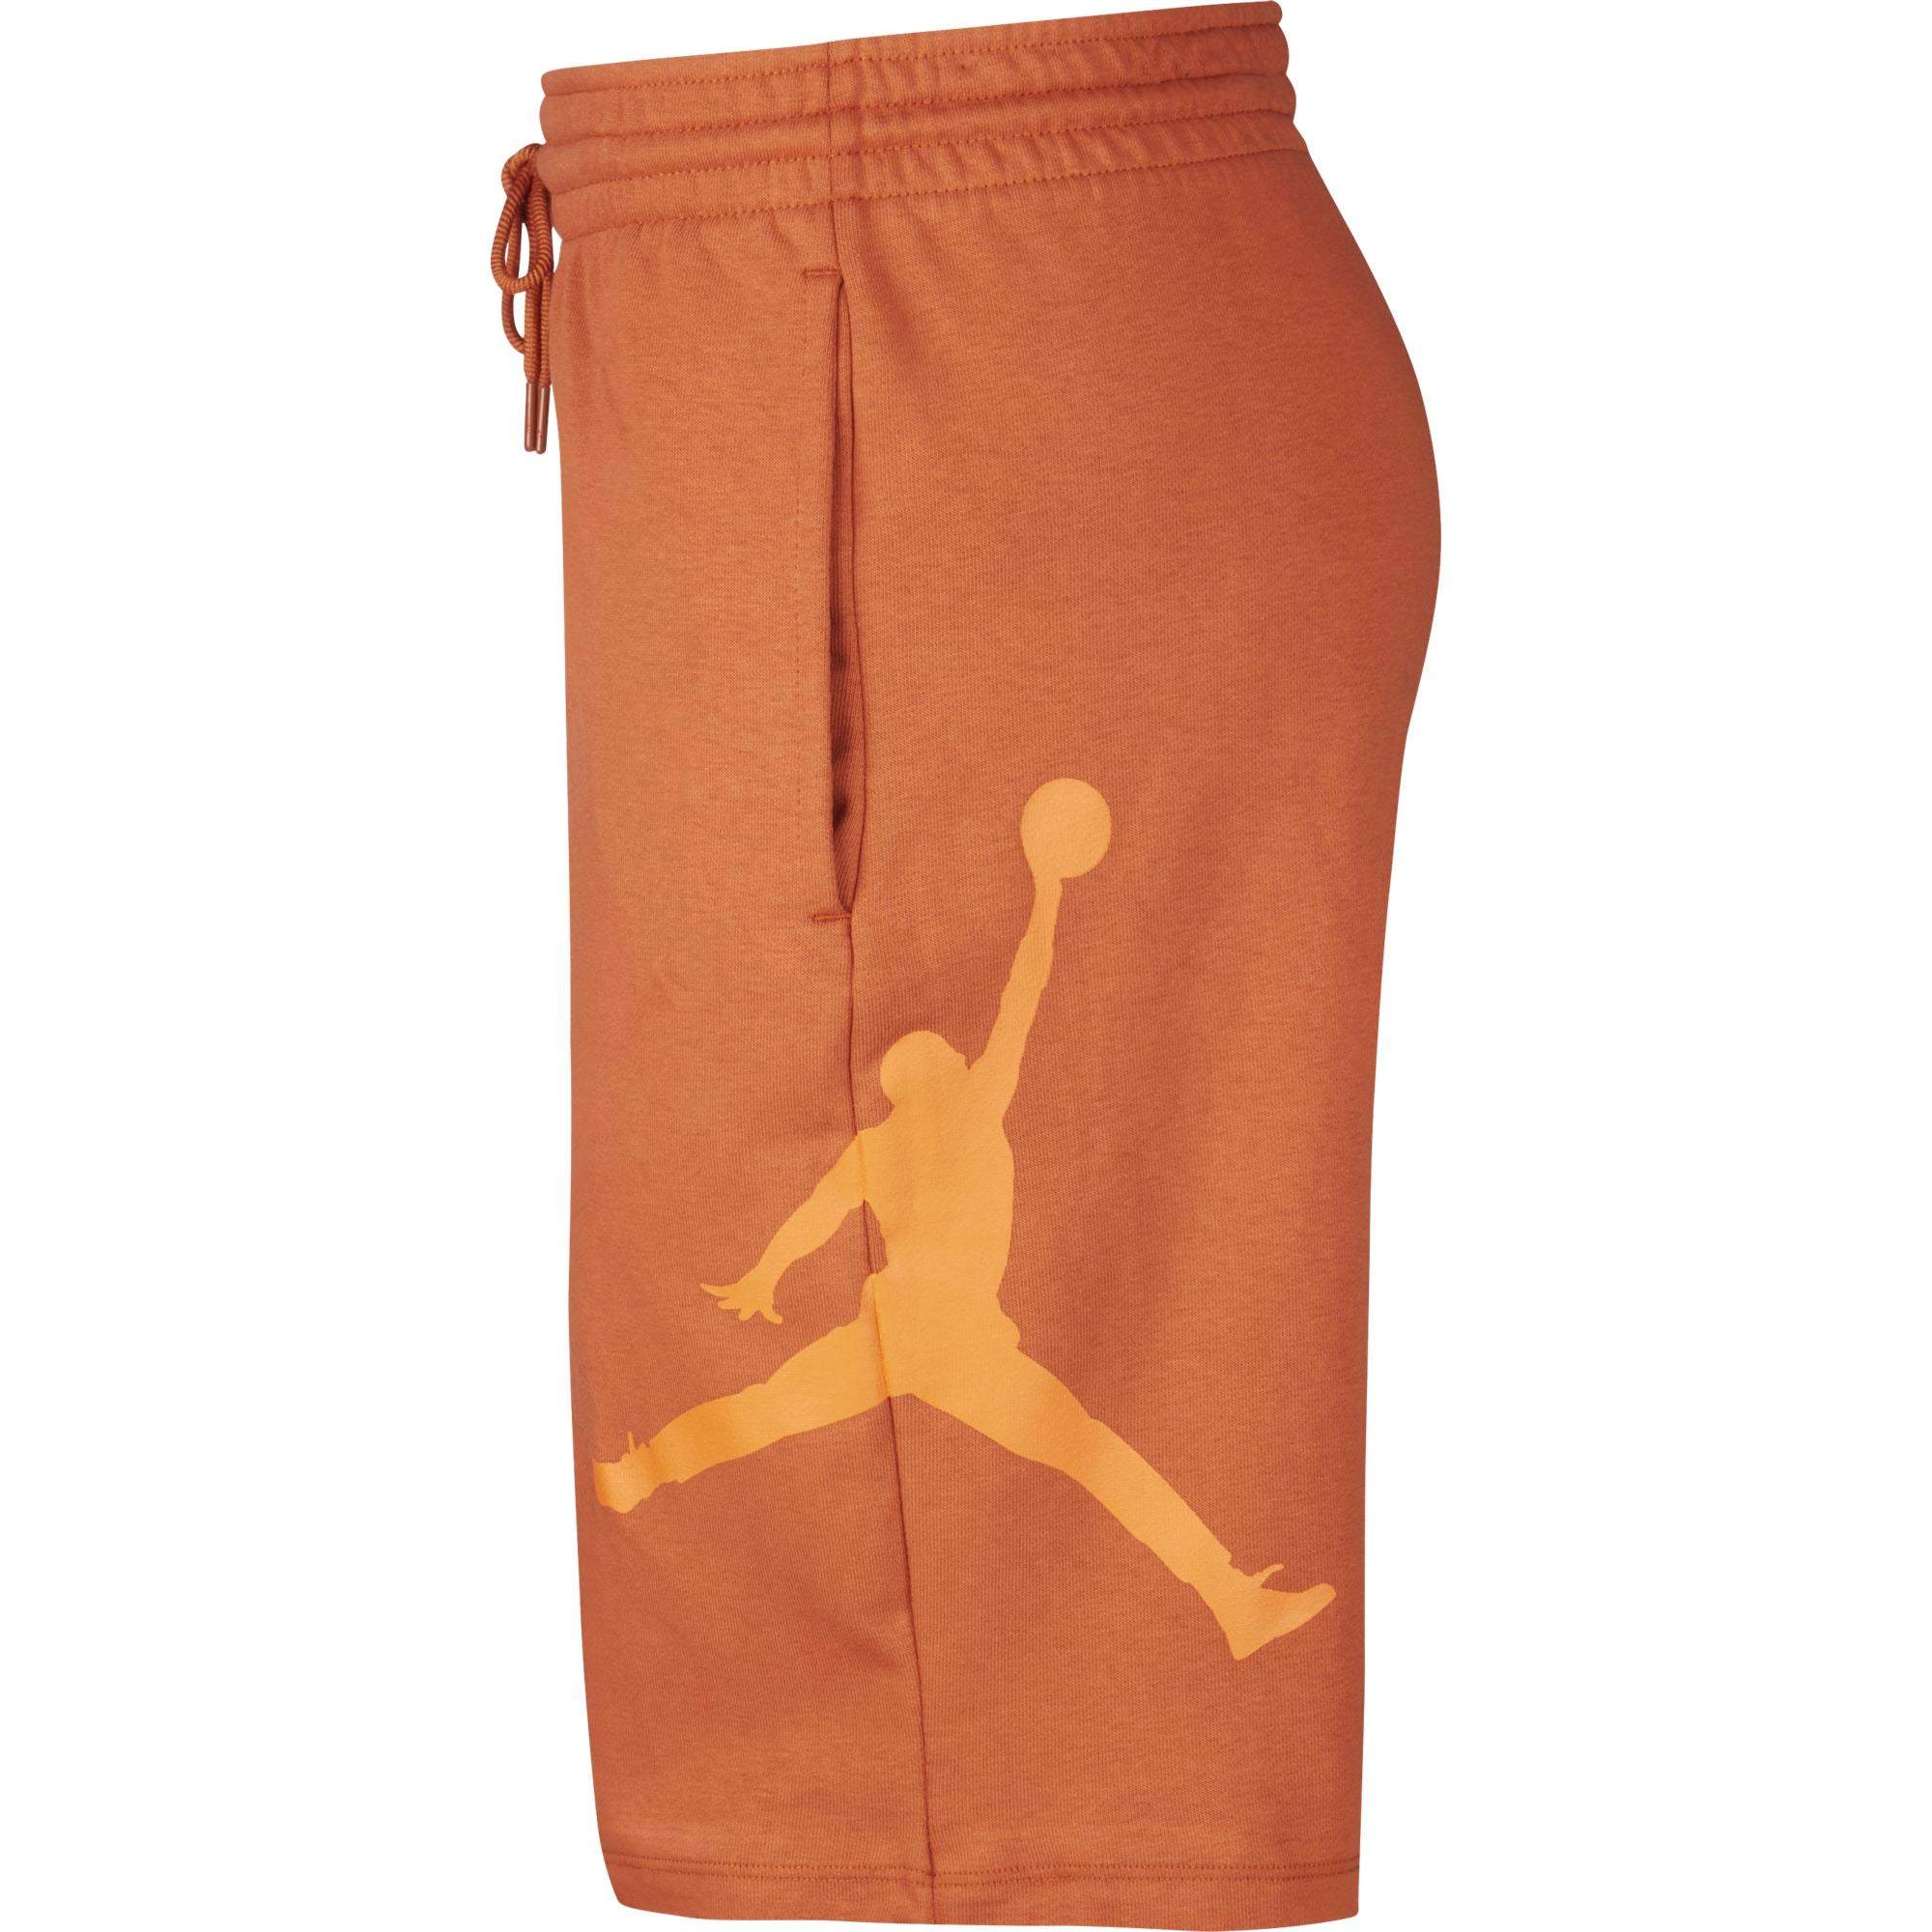 Nike Jordan Basketball Jumpman Logo Fleece Shorts - Dark Russet/Starfish